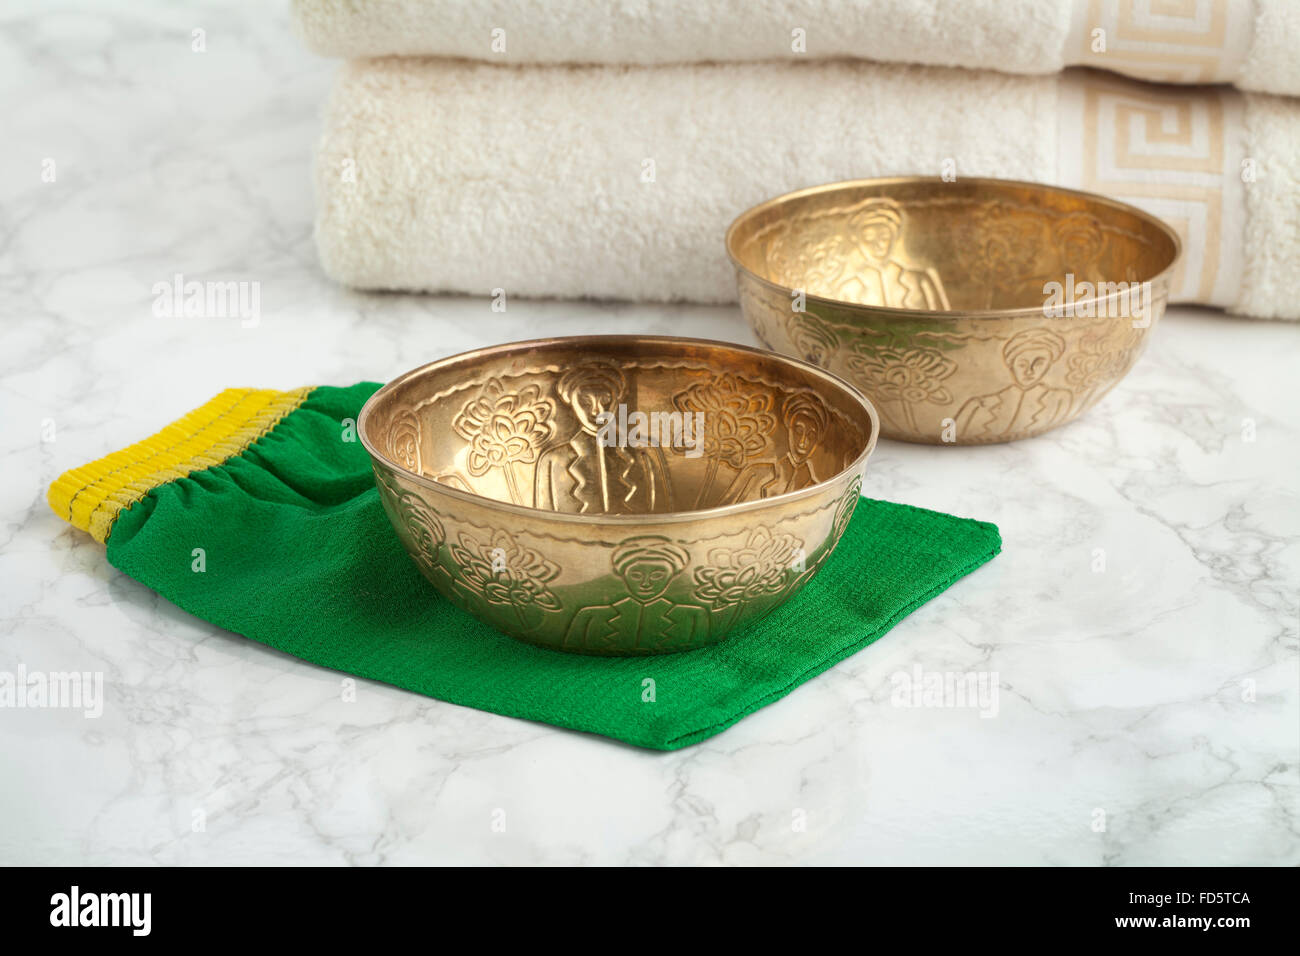 Water cups in the the Hammam to wash and clean the body - Stock Image